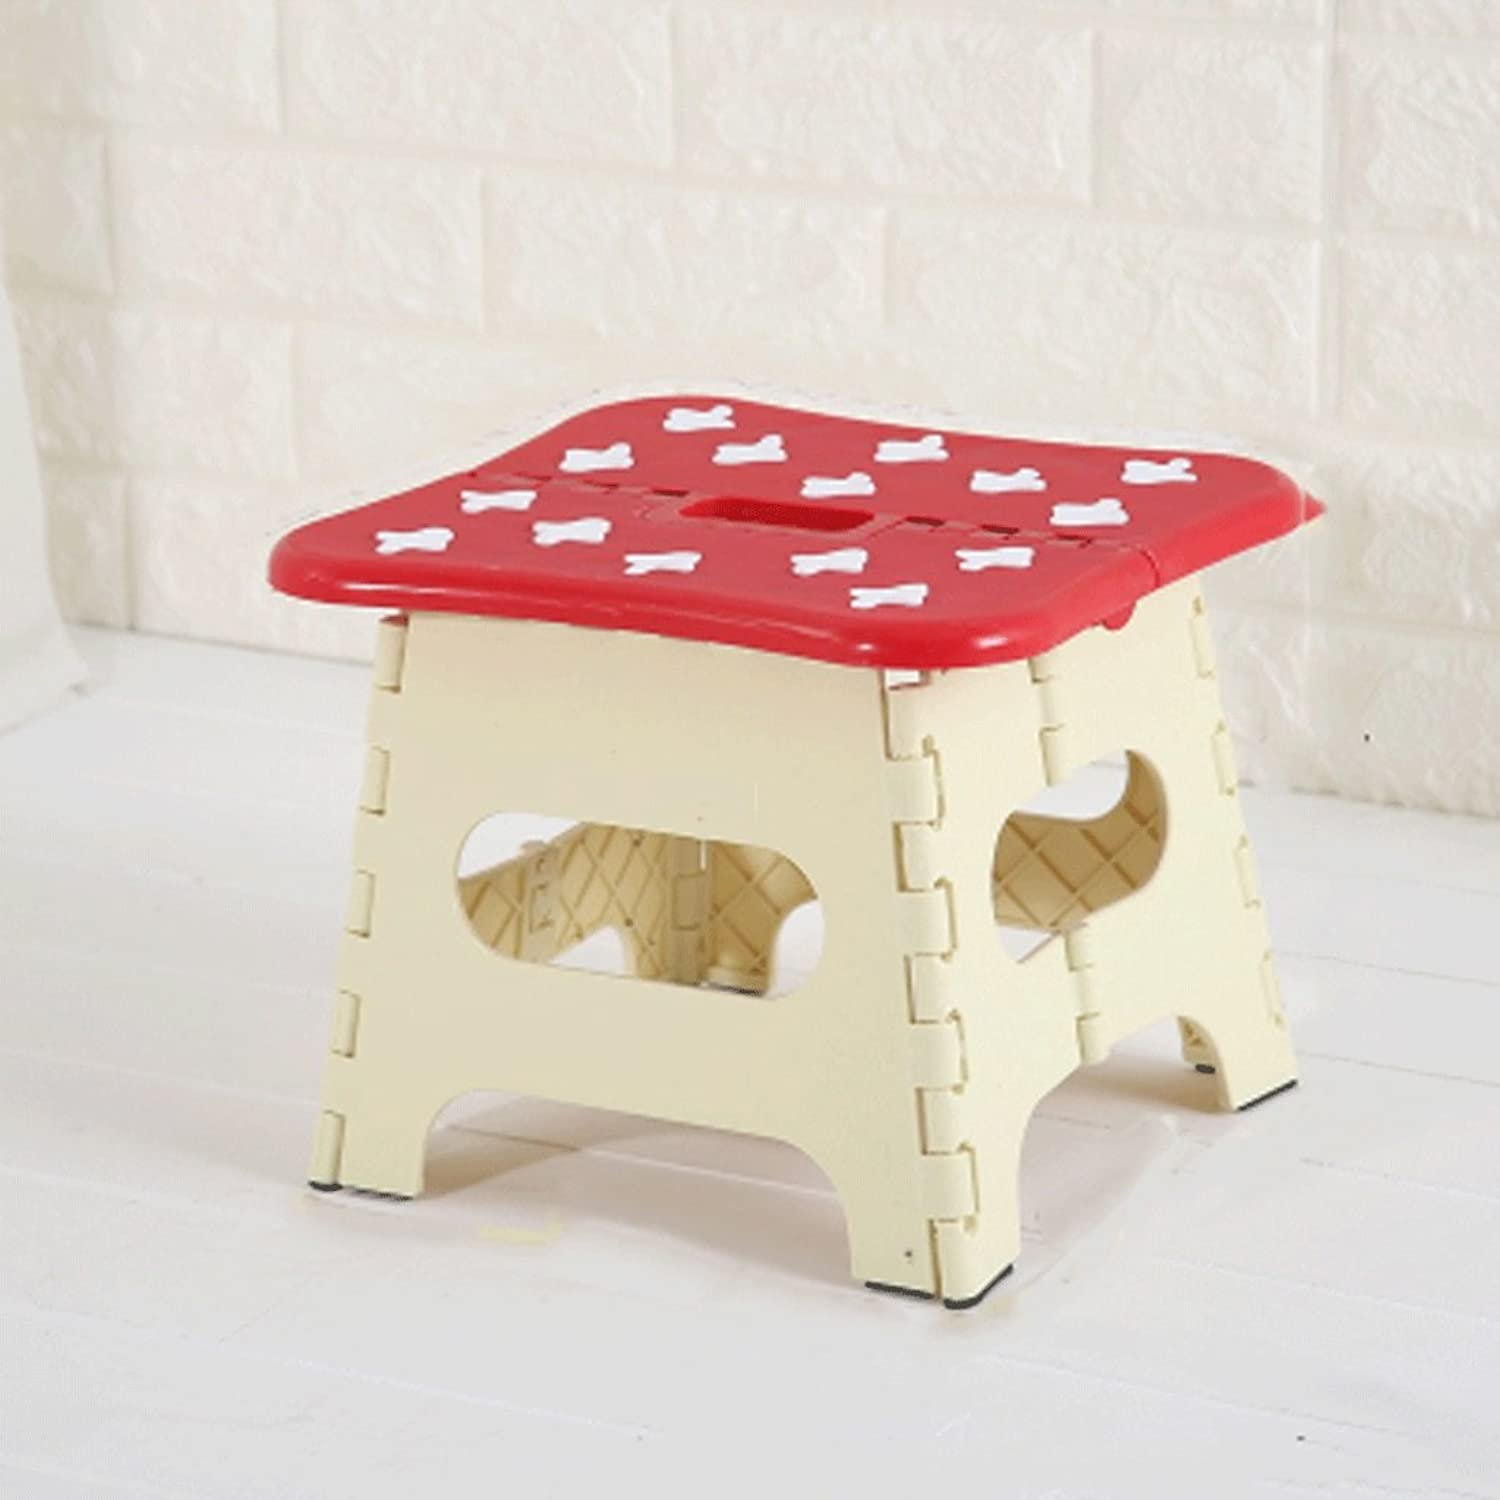 Folding Step Stool Foldable Stool Adults and Kids, Kitchen Stepping Stools, Garden Step Stool (color   1)